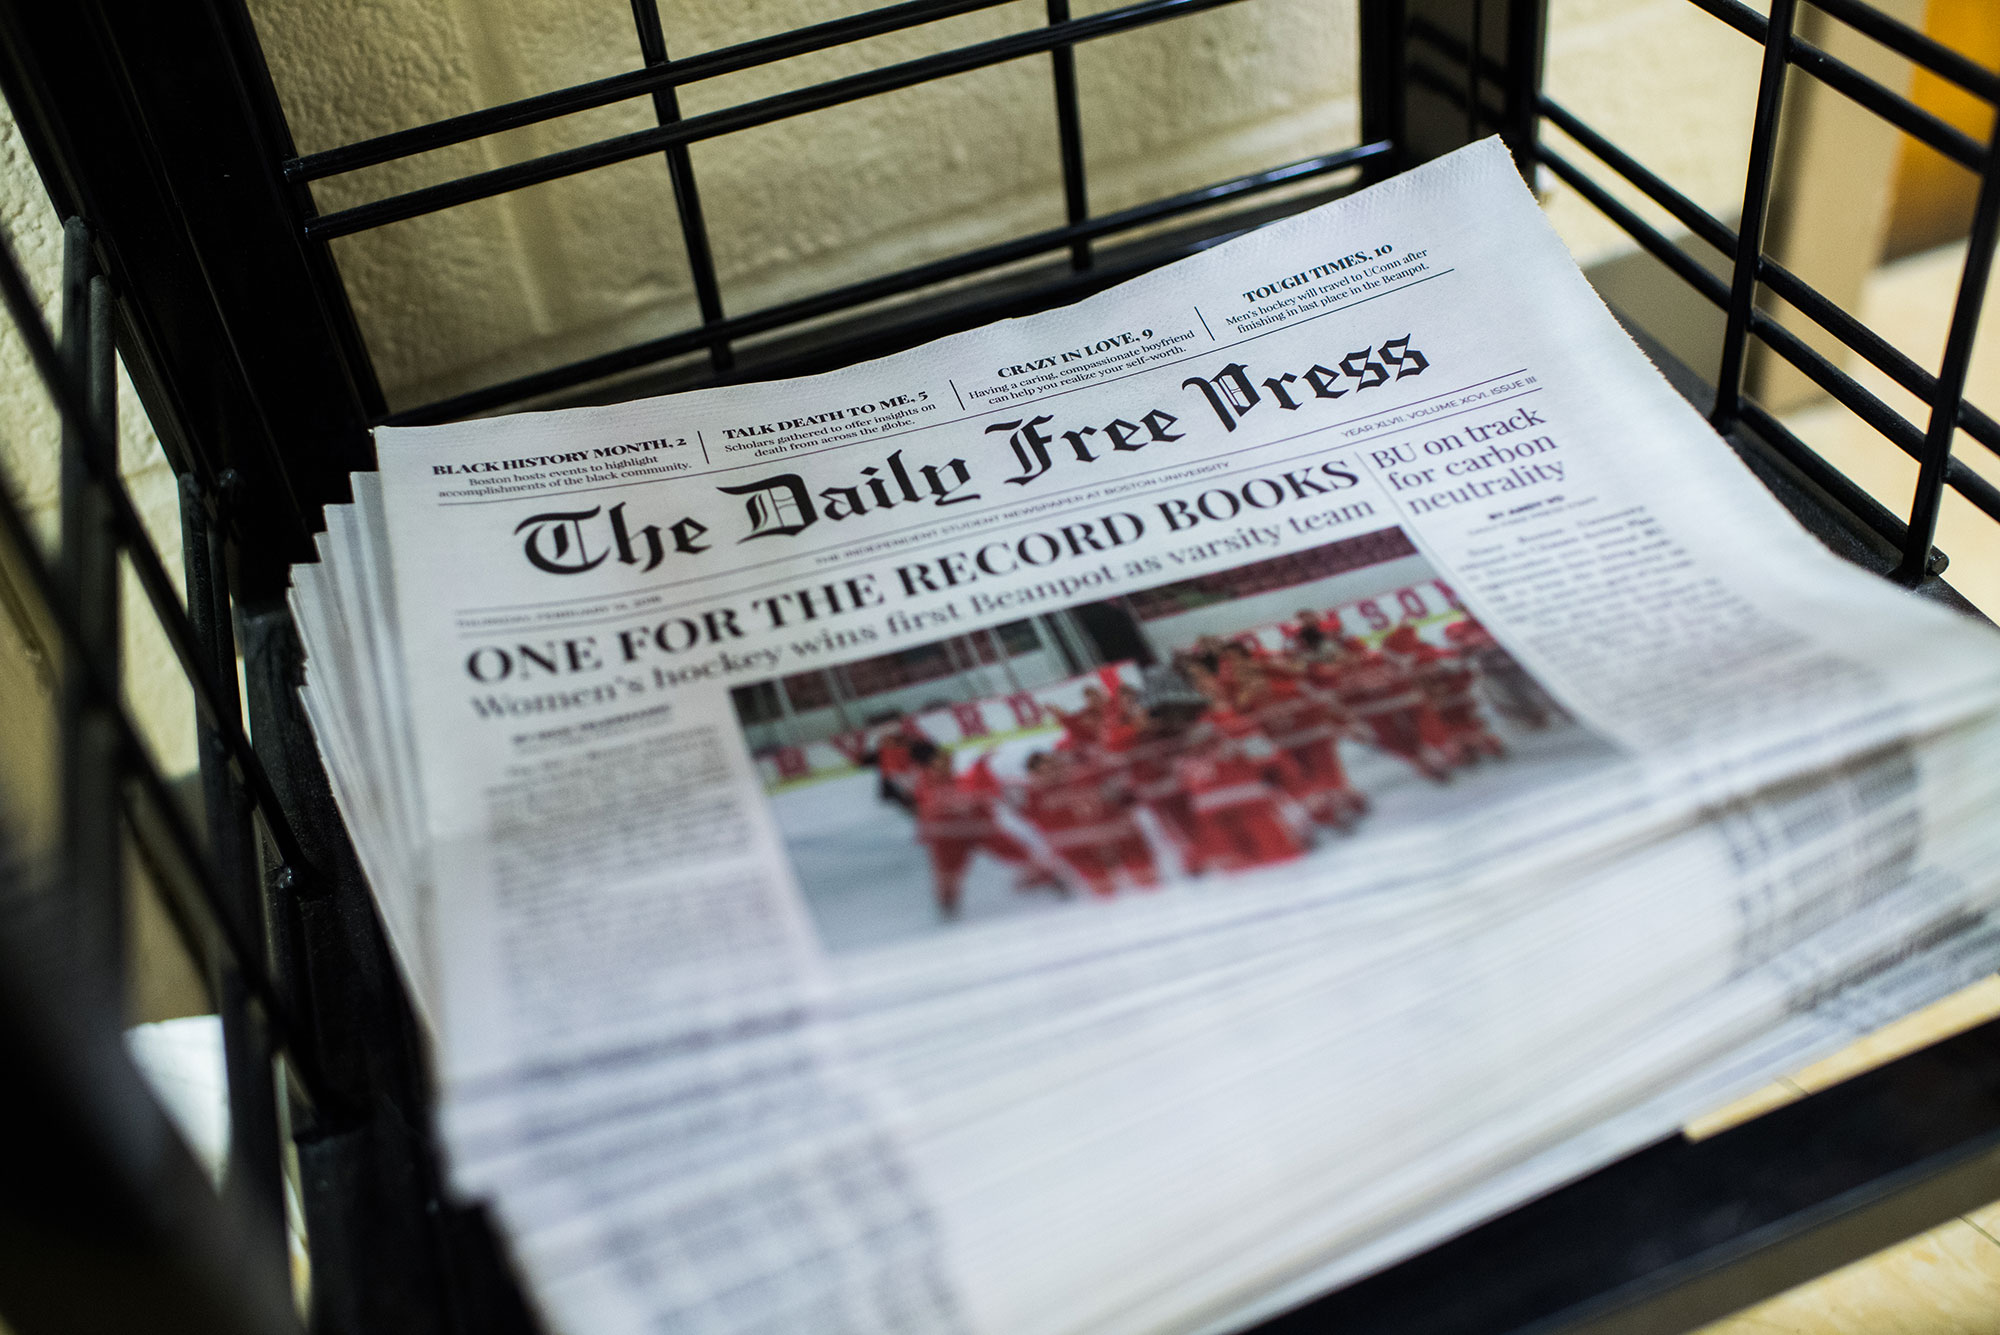 "Photo of a stack of The Daily Free Press newspapers stacked in COM building on Friday, February 15, 2019. The headline reads ""One for the Record Books"" and has an image of BU Hockey team celebrating."